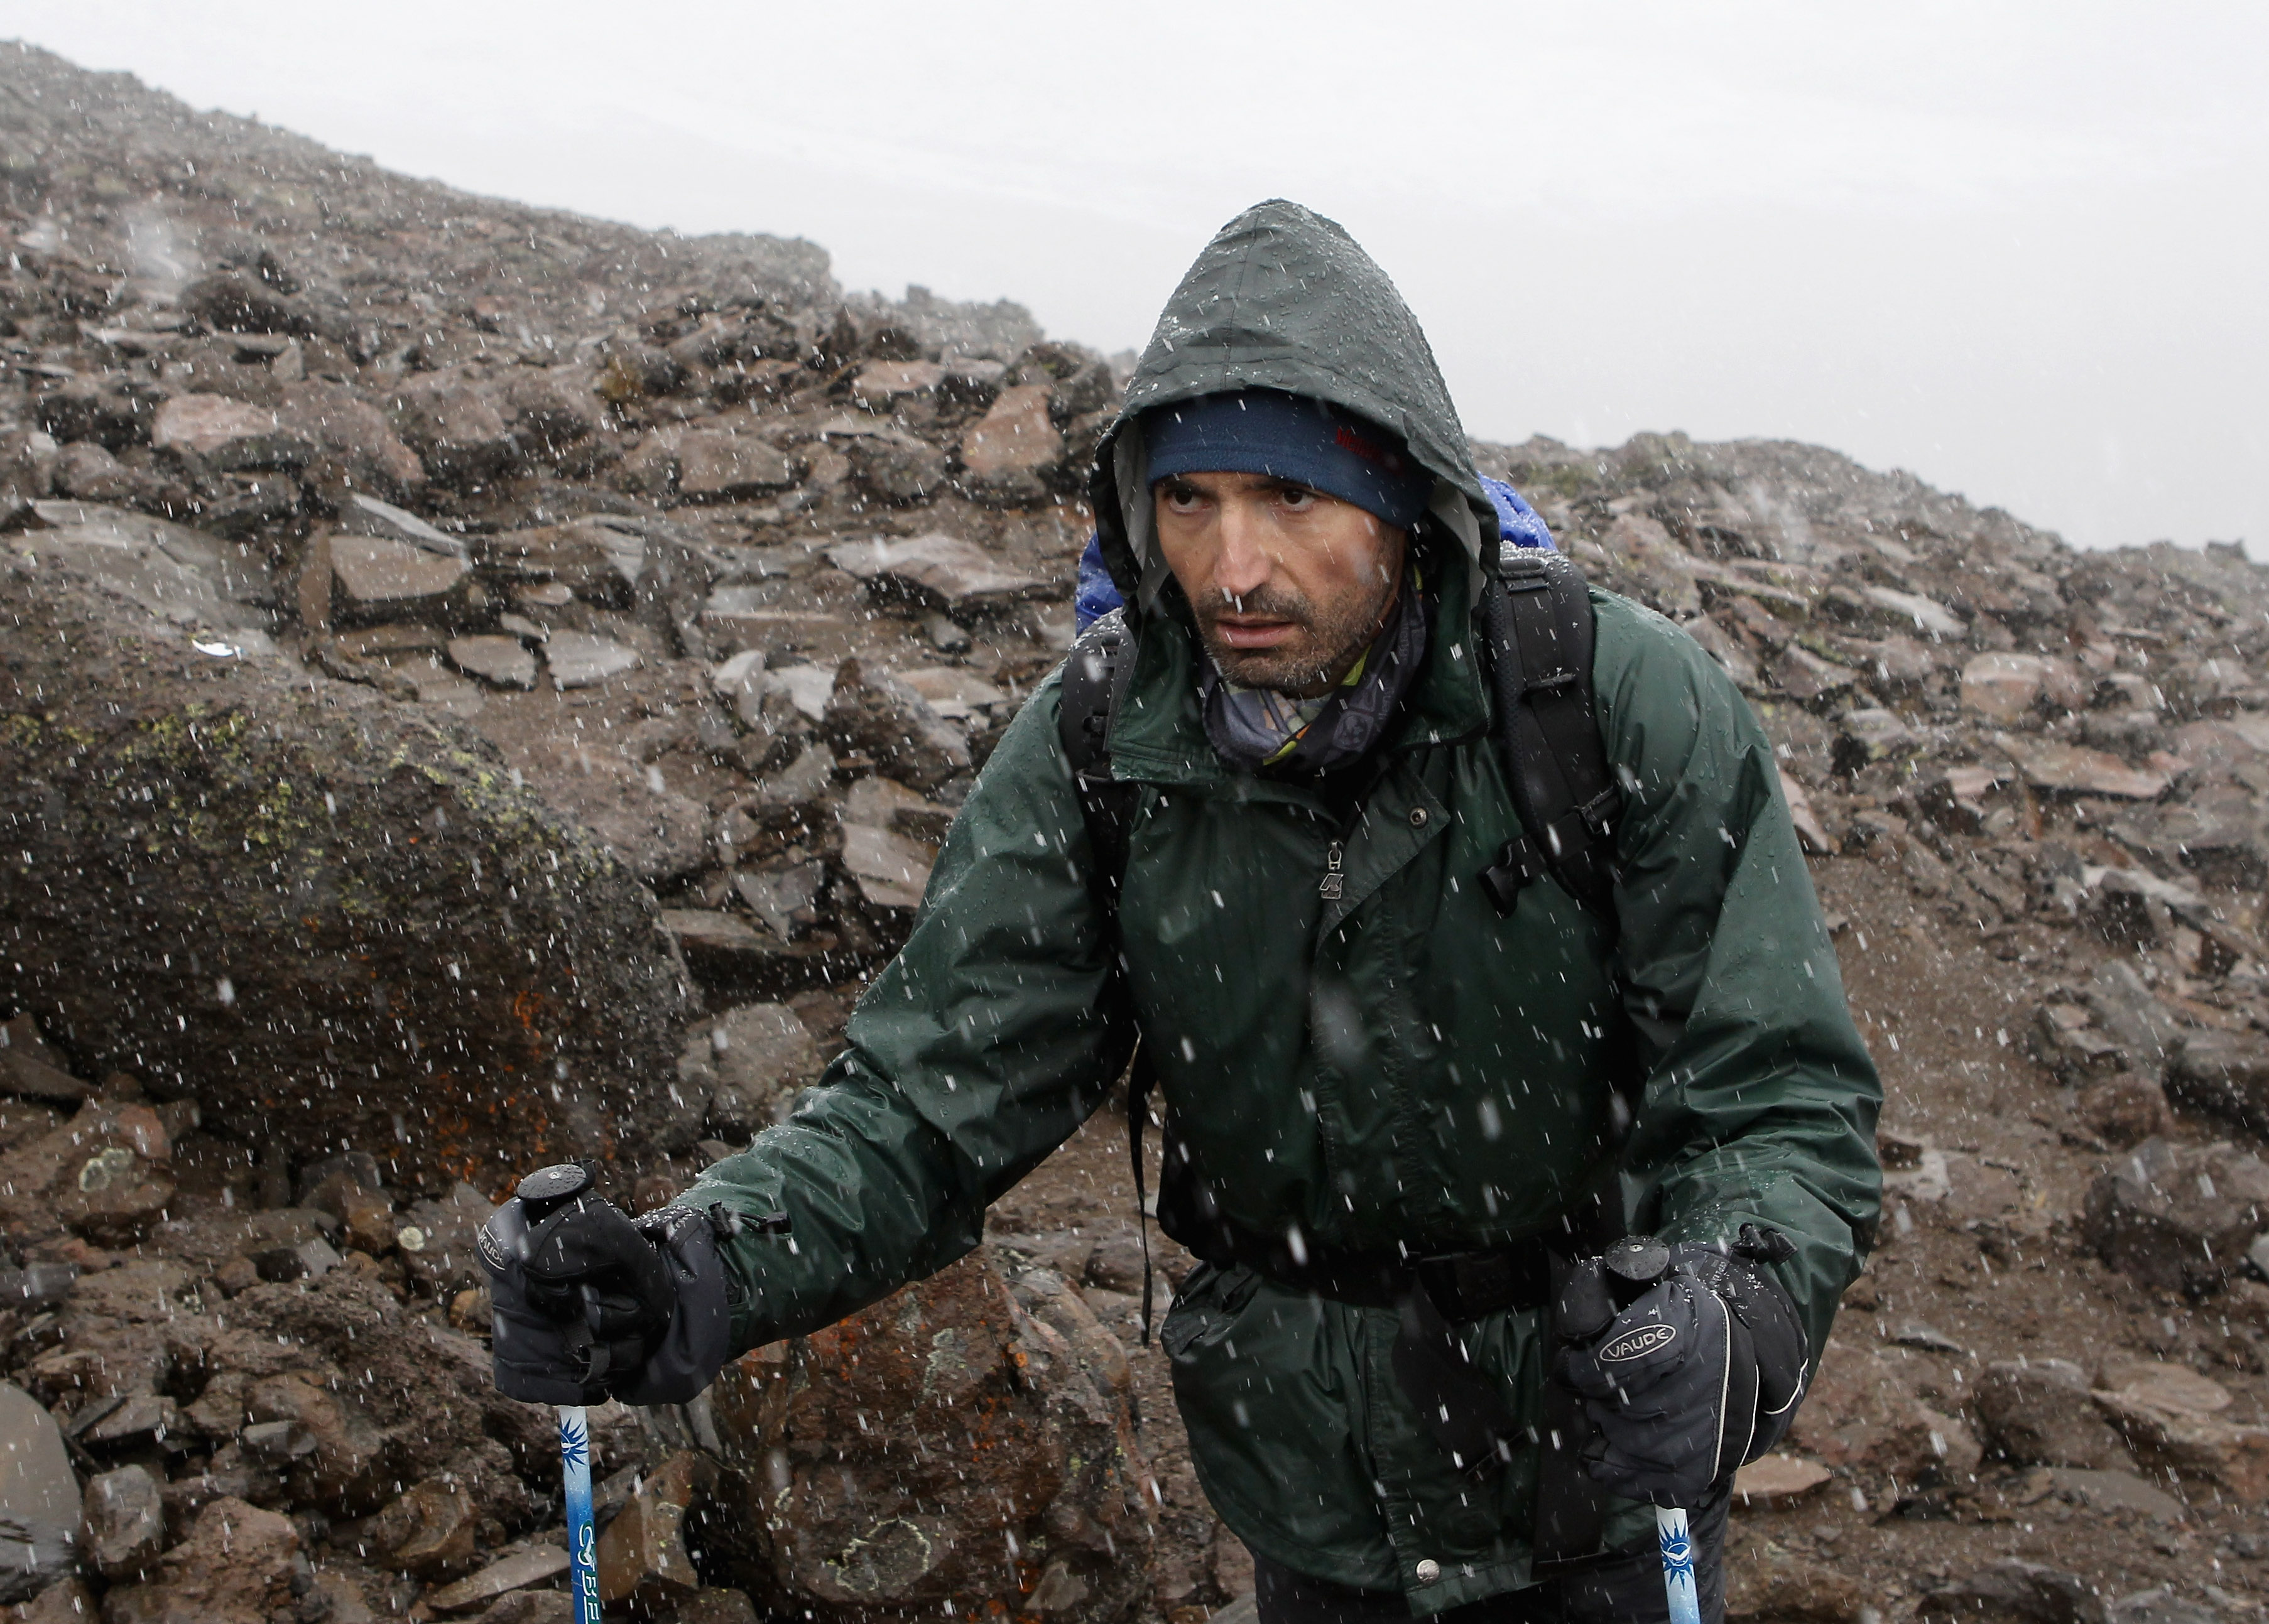 ARUSHA, TANZANIA - DECEMBER 10:  Laureus trekkers climb to high camp in a snow storm at around 4700m on day five of the Martina Navratilova Mt. Kilimanjaro Climb Day One on December 10, 2010 in Arusha, Tanzania. Martina Navratilova was forced to leave the mountain due to illness late last night but her team continue to climb Mount Kilimanjaro to raise money for the Laureus Sport for Good Foundation. Martina Navratilova, a member of the Laureus World Sports Academy will attempt to scale the 5895m peak, Africa's highest free standing mountain with a team of fundraisers including German Paralympic cyclist Michael Teuber and British badminton player Gail Emms .  (Photo by Chris Jackson/Getty Images for Laureus)